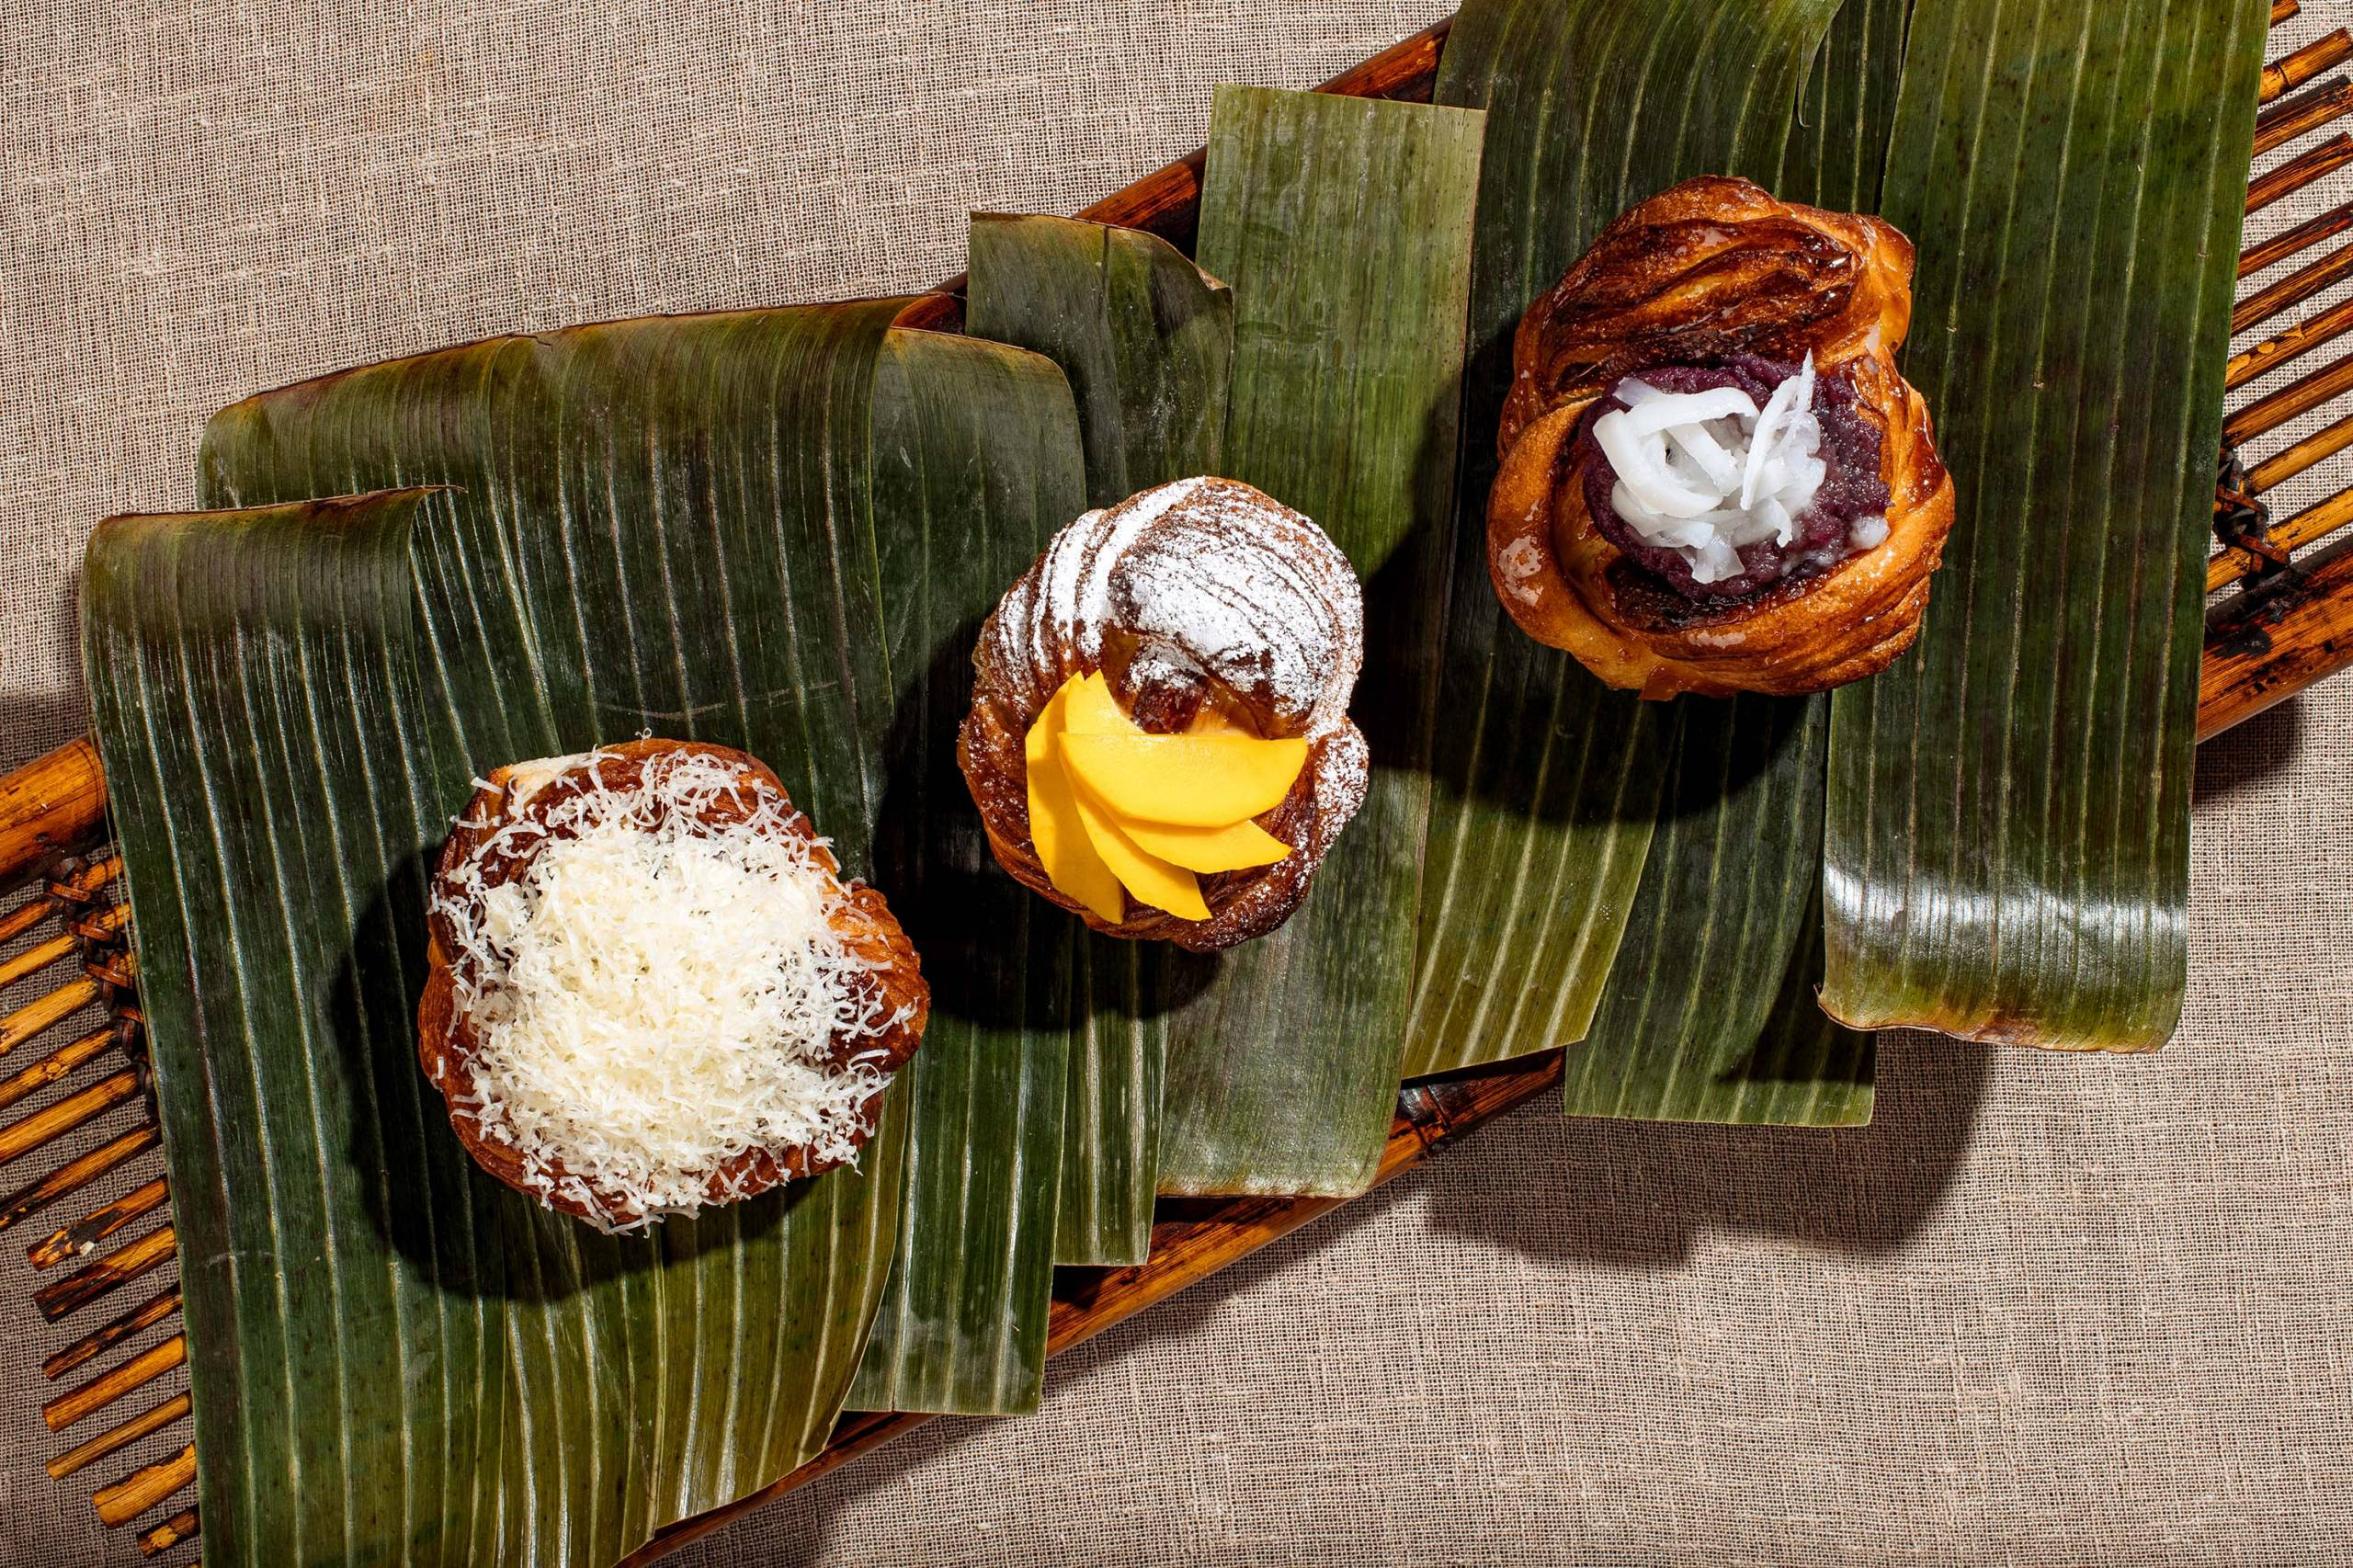 A trio of Filipino pastries, plated on top of banana leaves